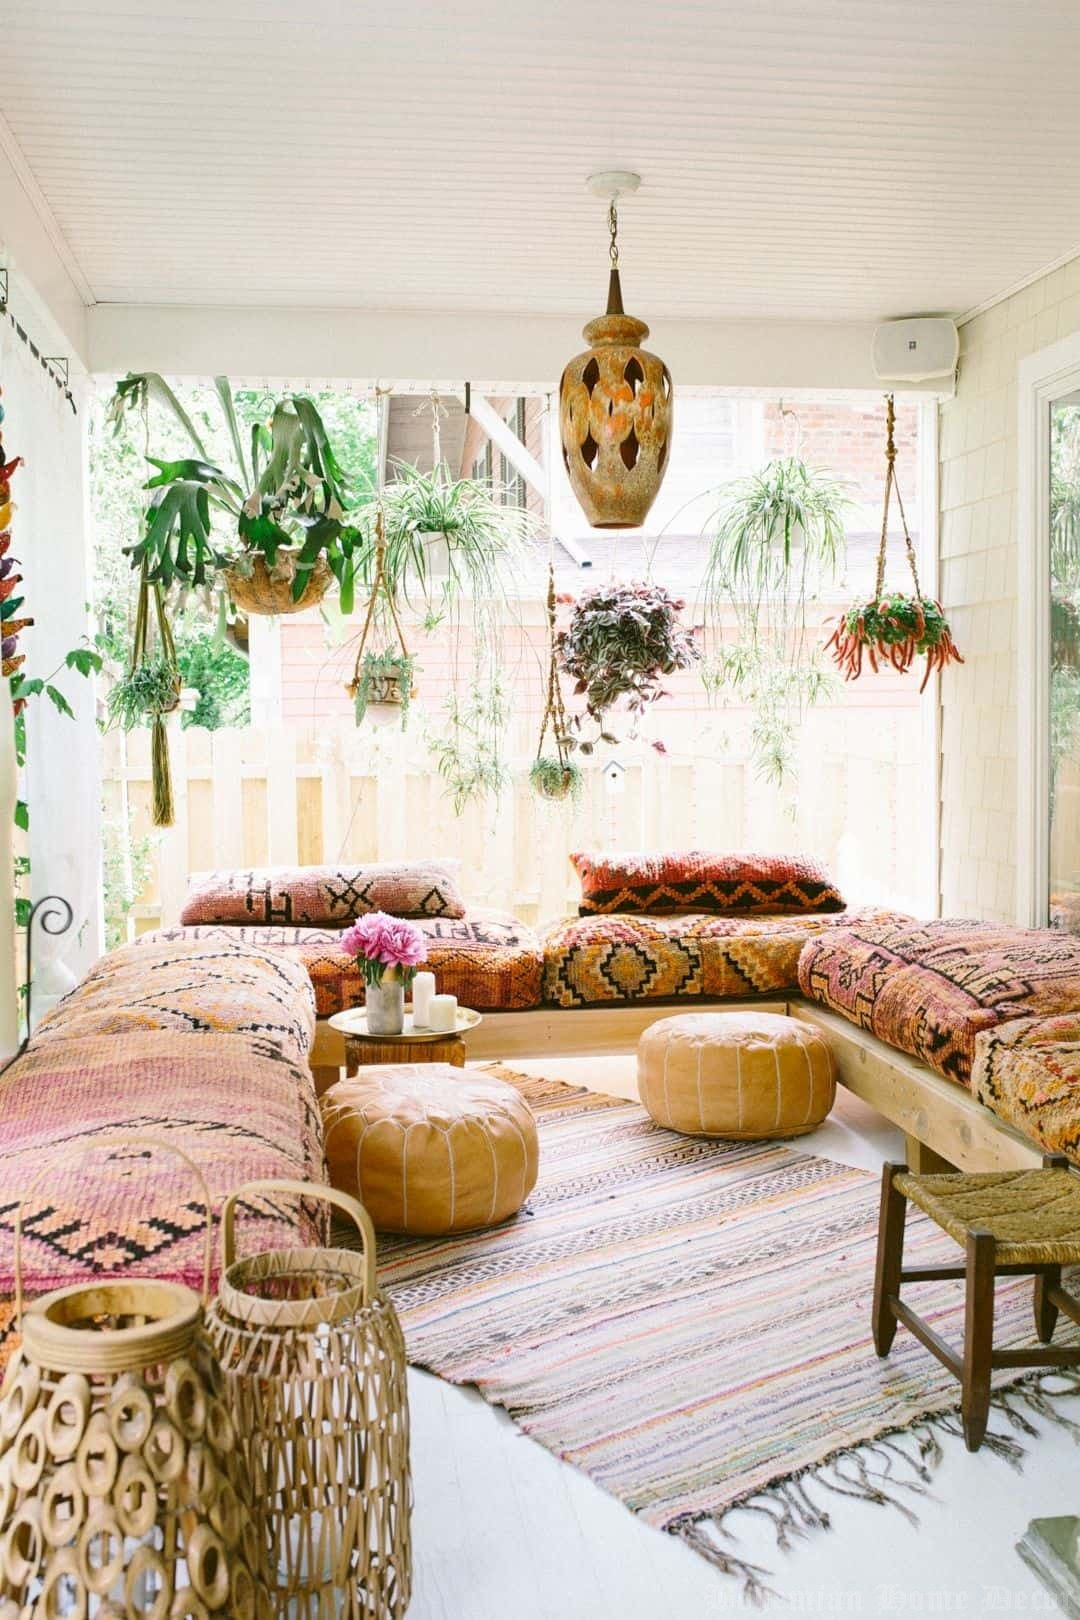 Never Lose Your Bohemian Home Decor Again